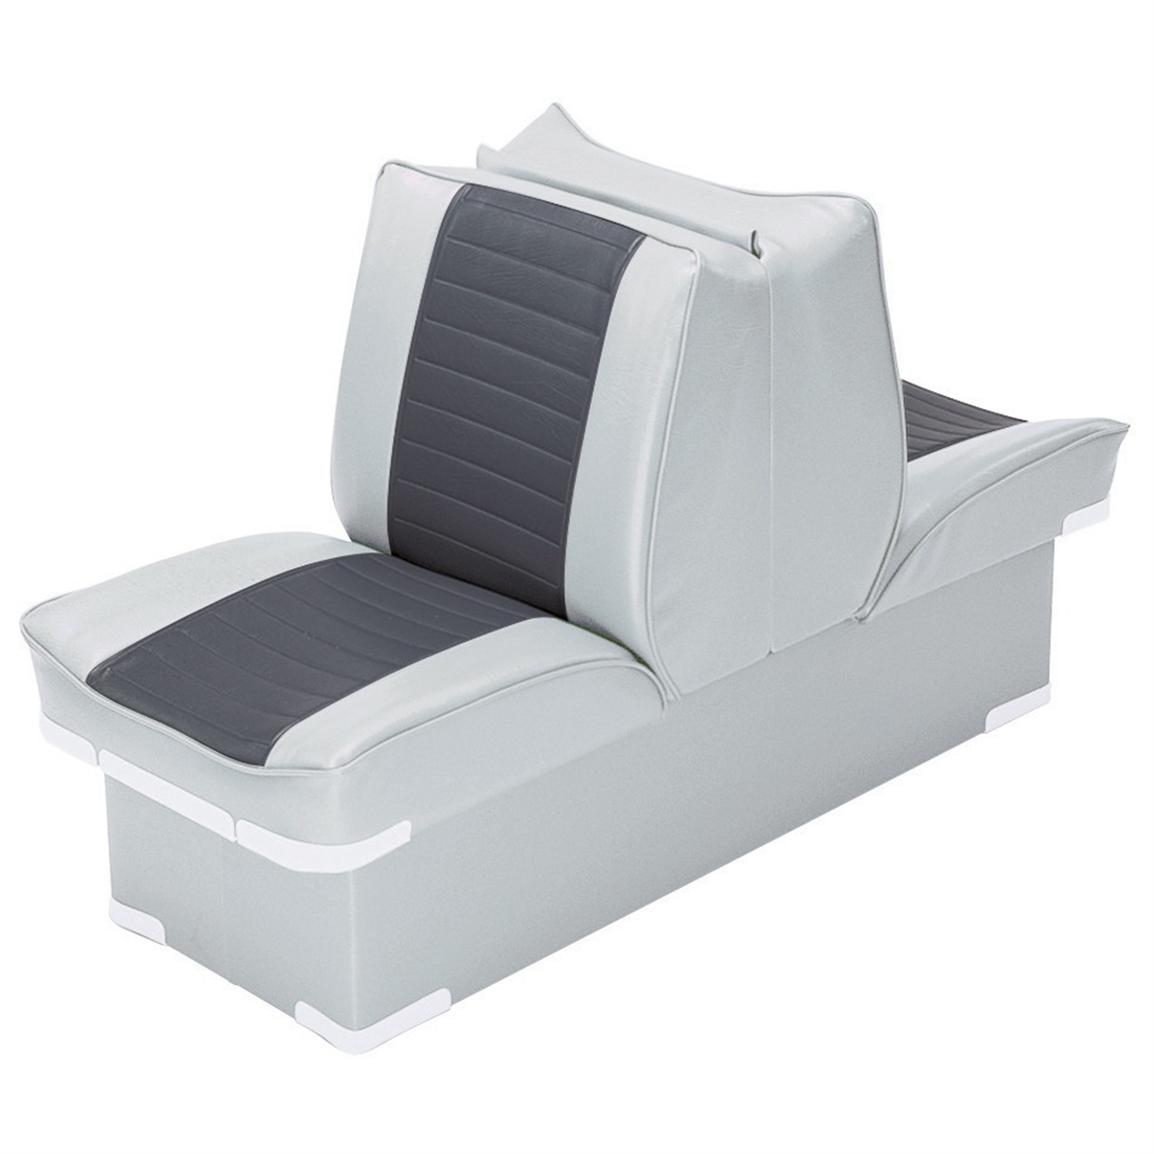 Wise Boat Lounge Seat, Grey / Charcoal